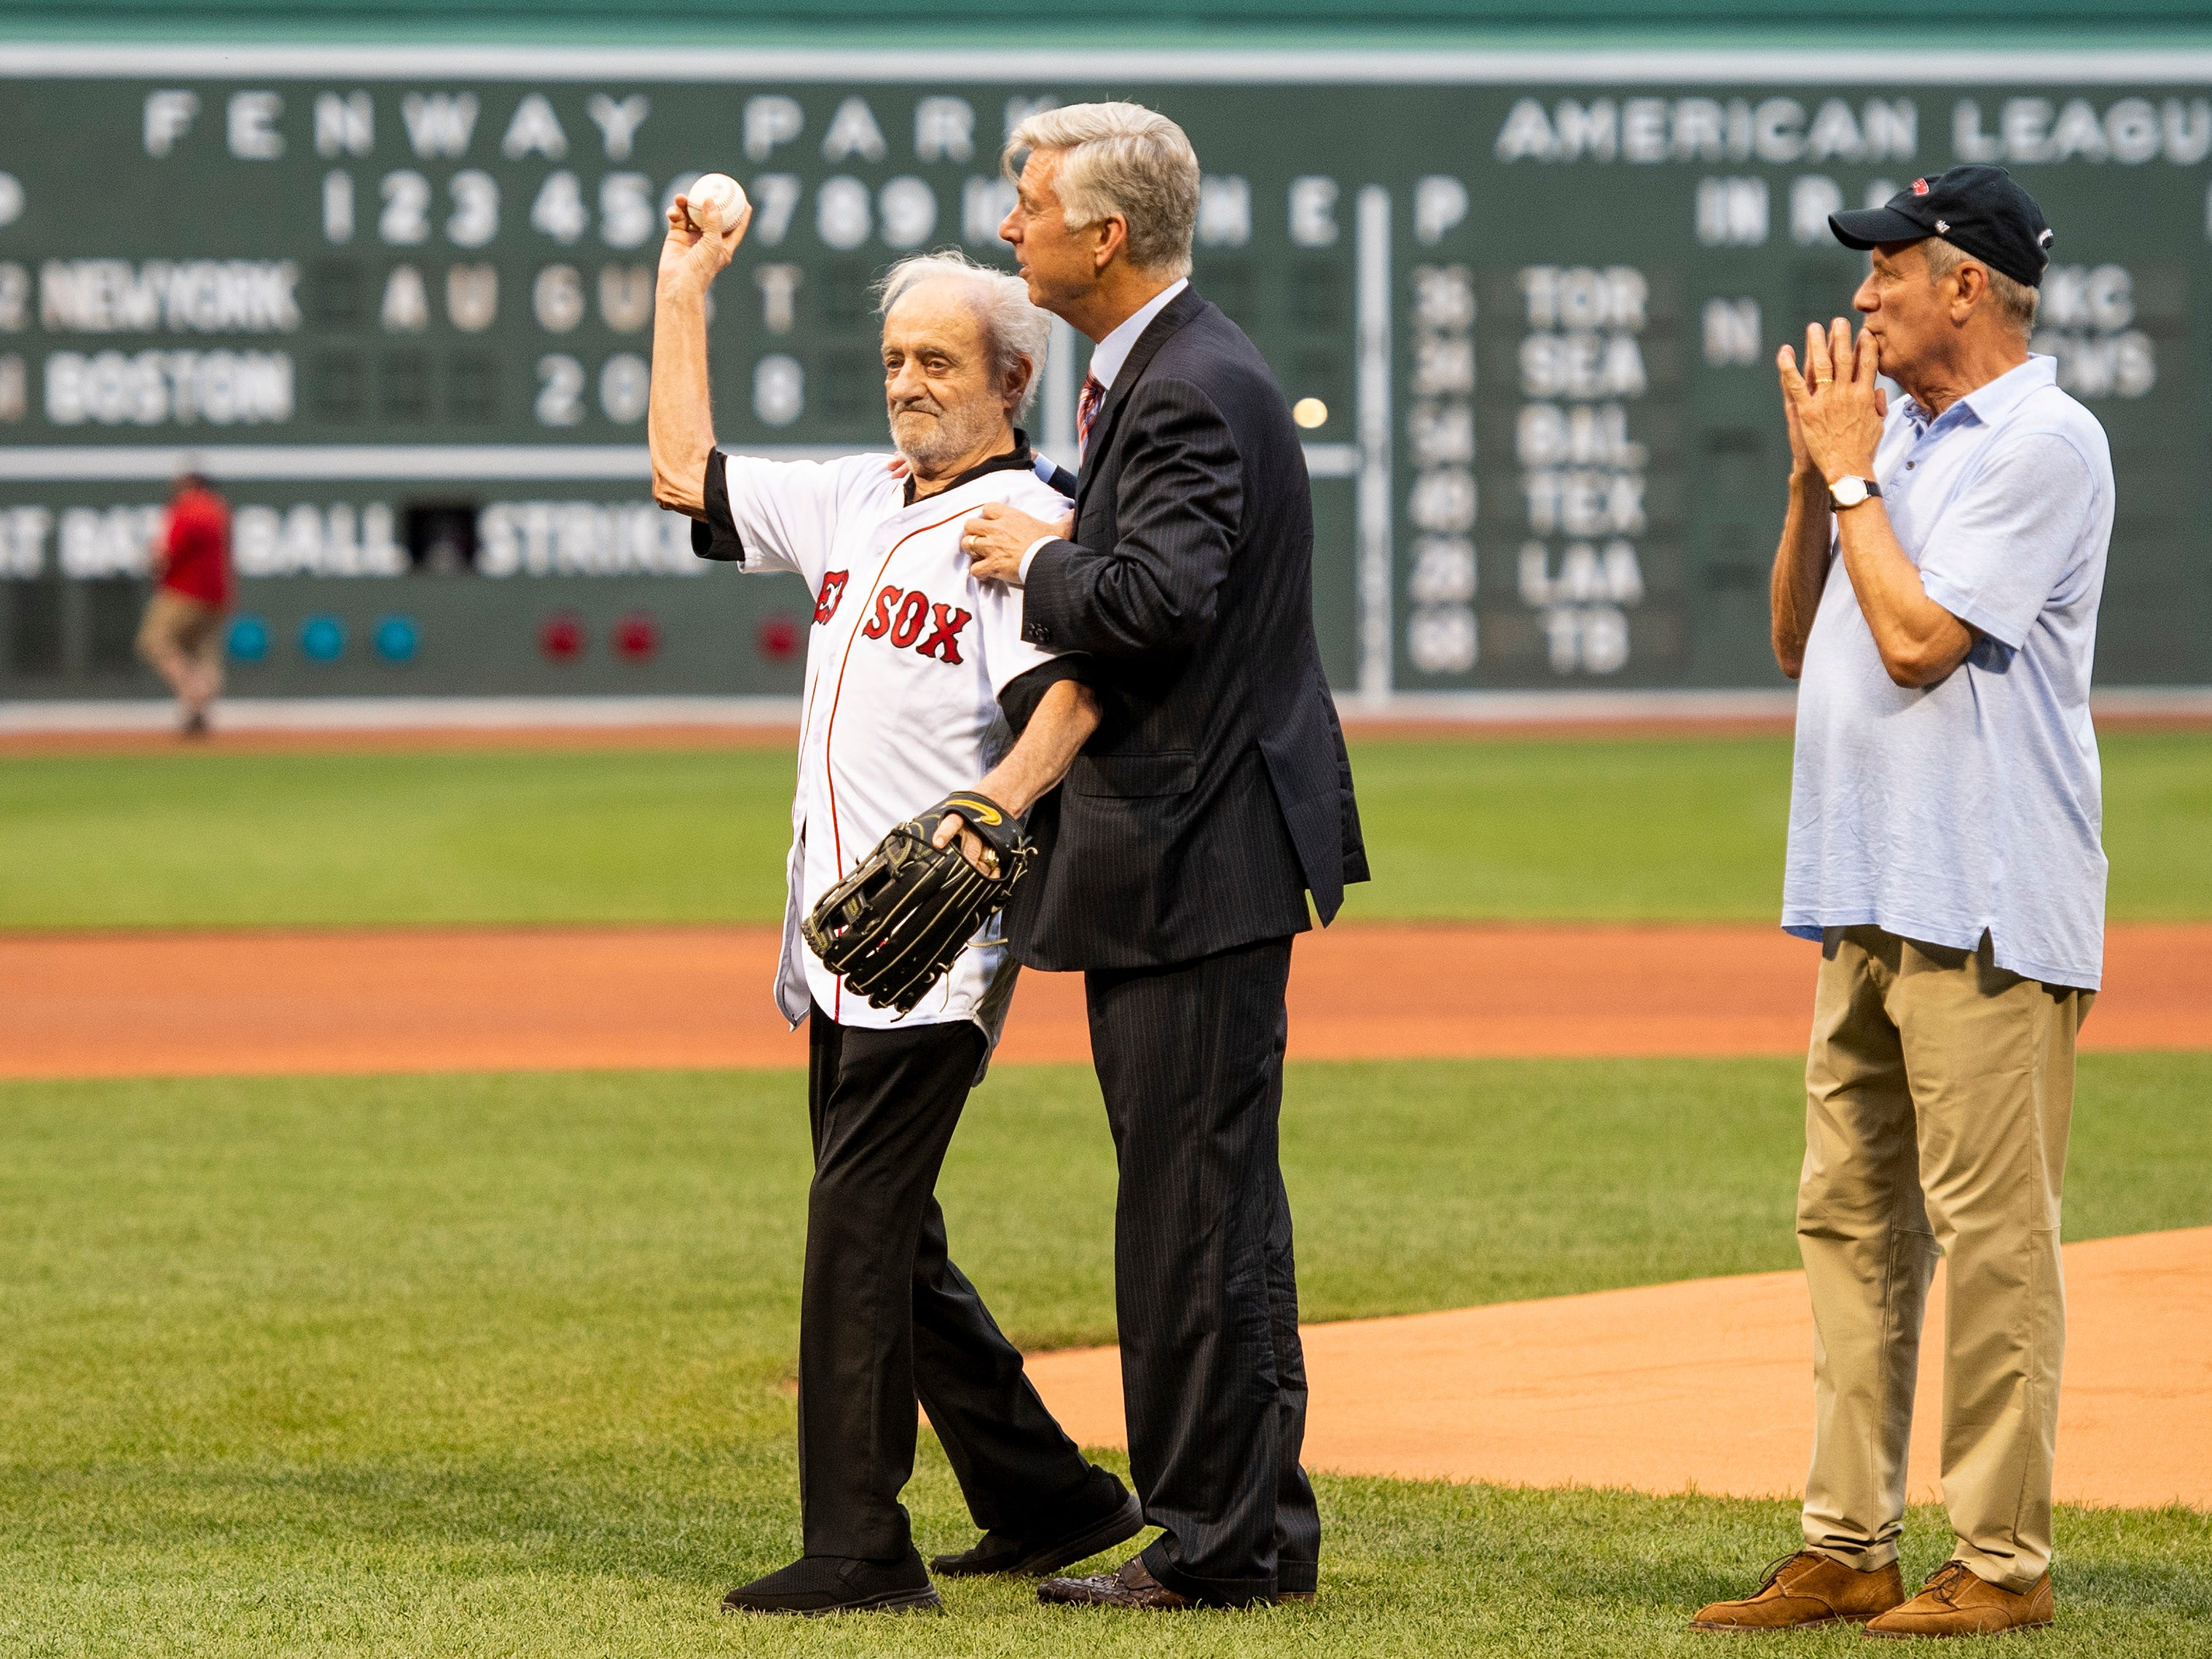 BOSTON, MA - AUGUST 2: Major League Baseball Executive Roland Hemond throws out a ceremonial first pitch alongside Boston Red Sox President & CEO Emeritus Larry Lucchino and Boston Red Sox President of Baseball Operations Dave Dombrowski before throwing out the ceremonial first pitch before a game between the Boston Red Sox and the New York Yankees on August 2, 2018 at Fenway Park in Boston, Massachusetts. (Photo by Billie Weiss/Boston Red Sox/Getty Images) *** Local Caption *** Roland Hemond; Dave Dombrowski; Larry Lucchino